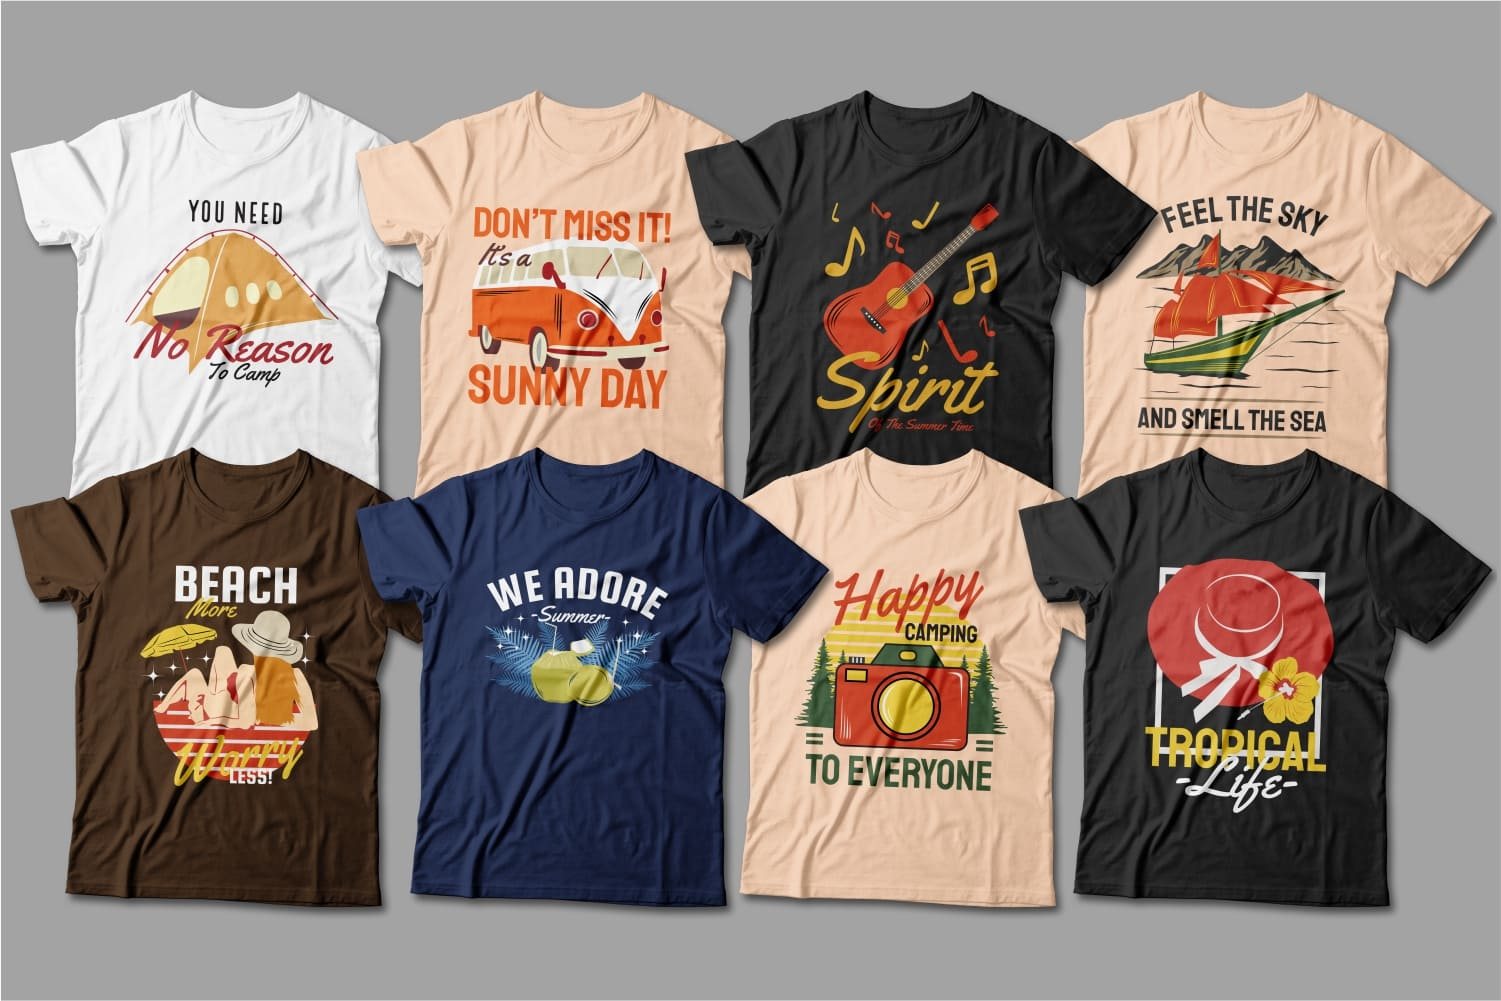 Summer T-shirts featuring travel and summer clothing attributes.